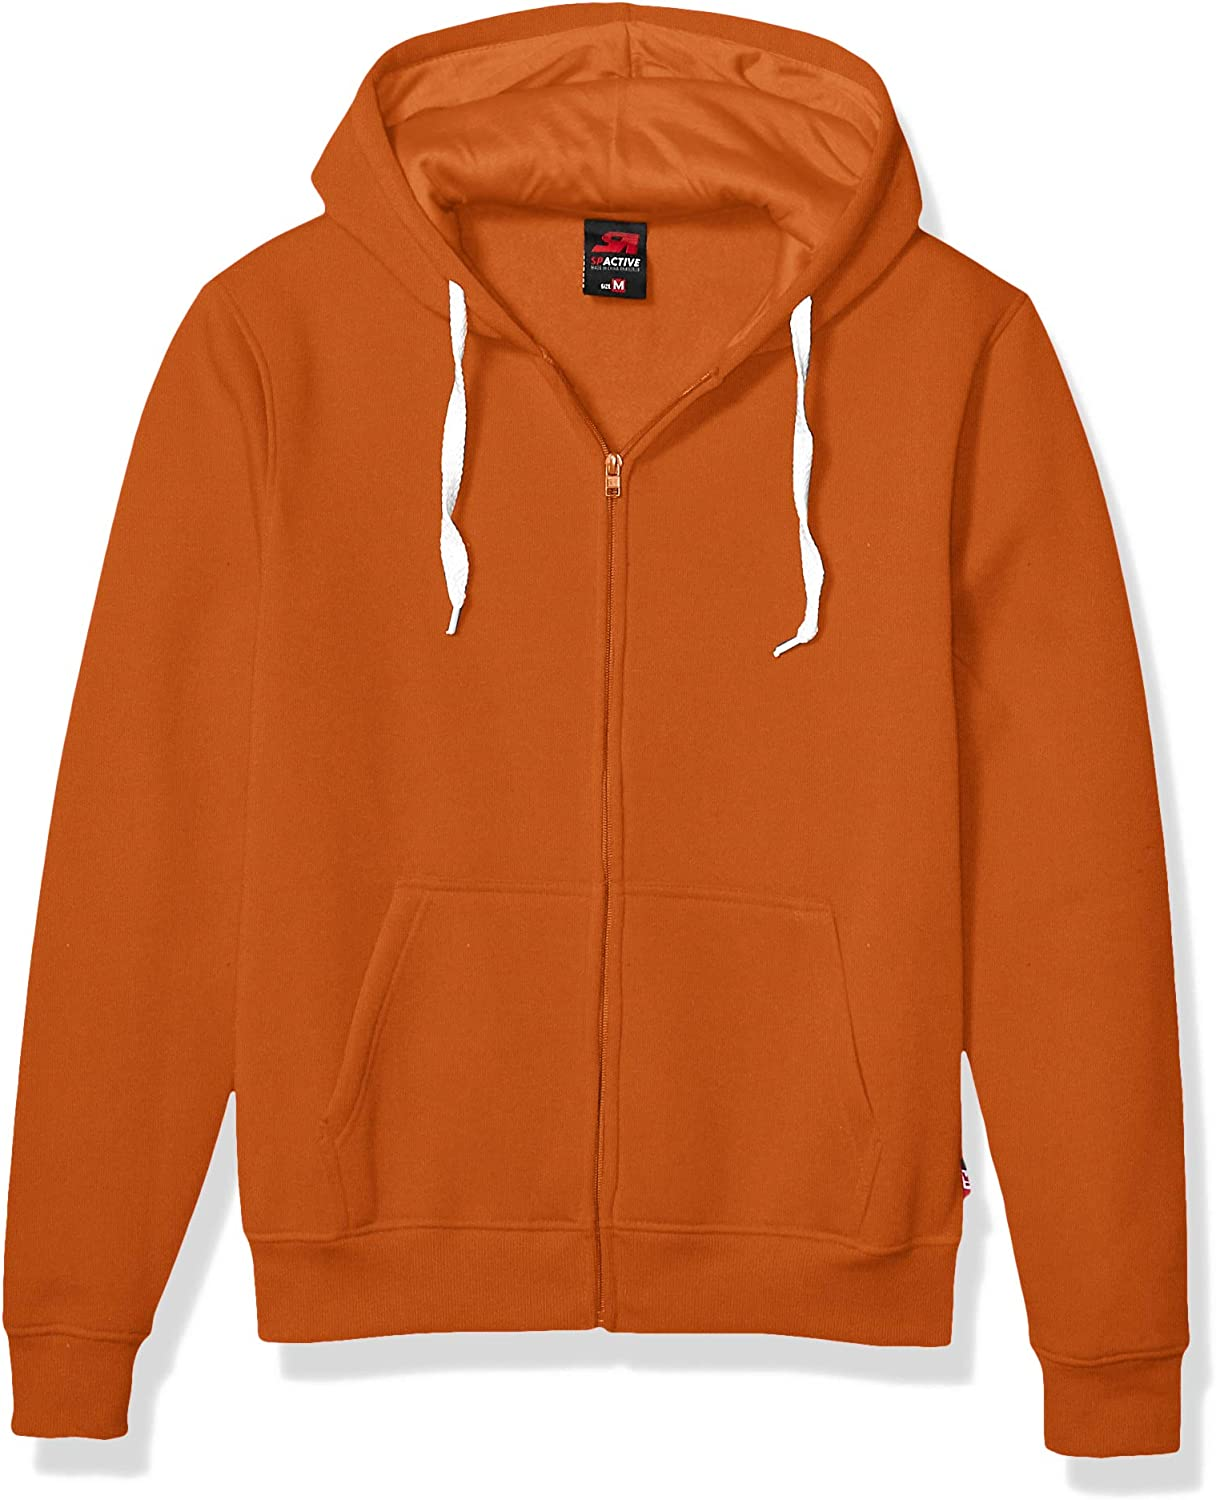 Southpole Men's Active Basic Hooded Full Zip Fleece in Premium Fabric: Clothing